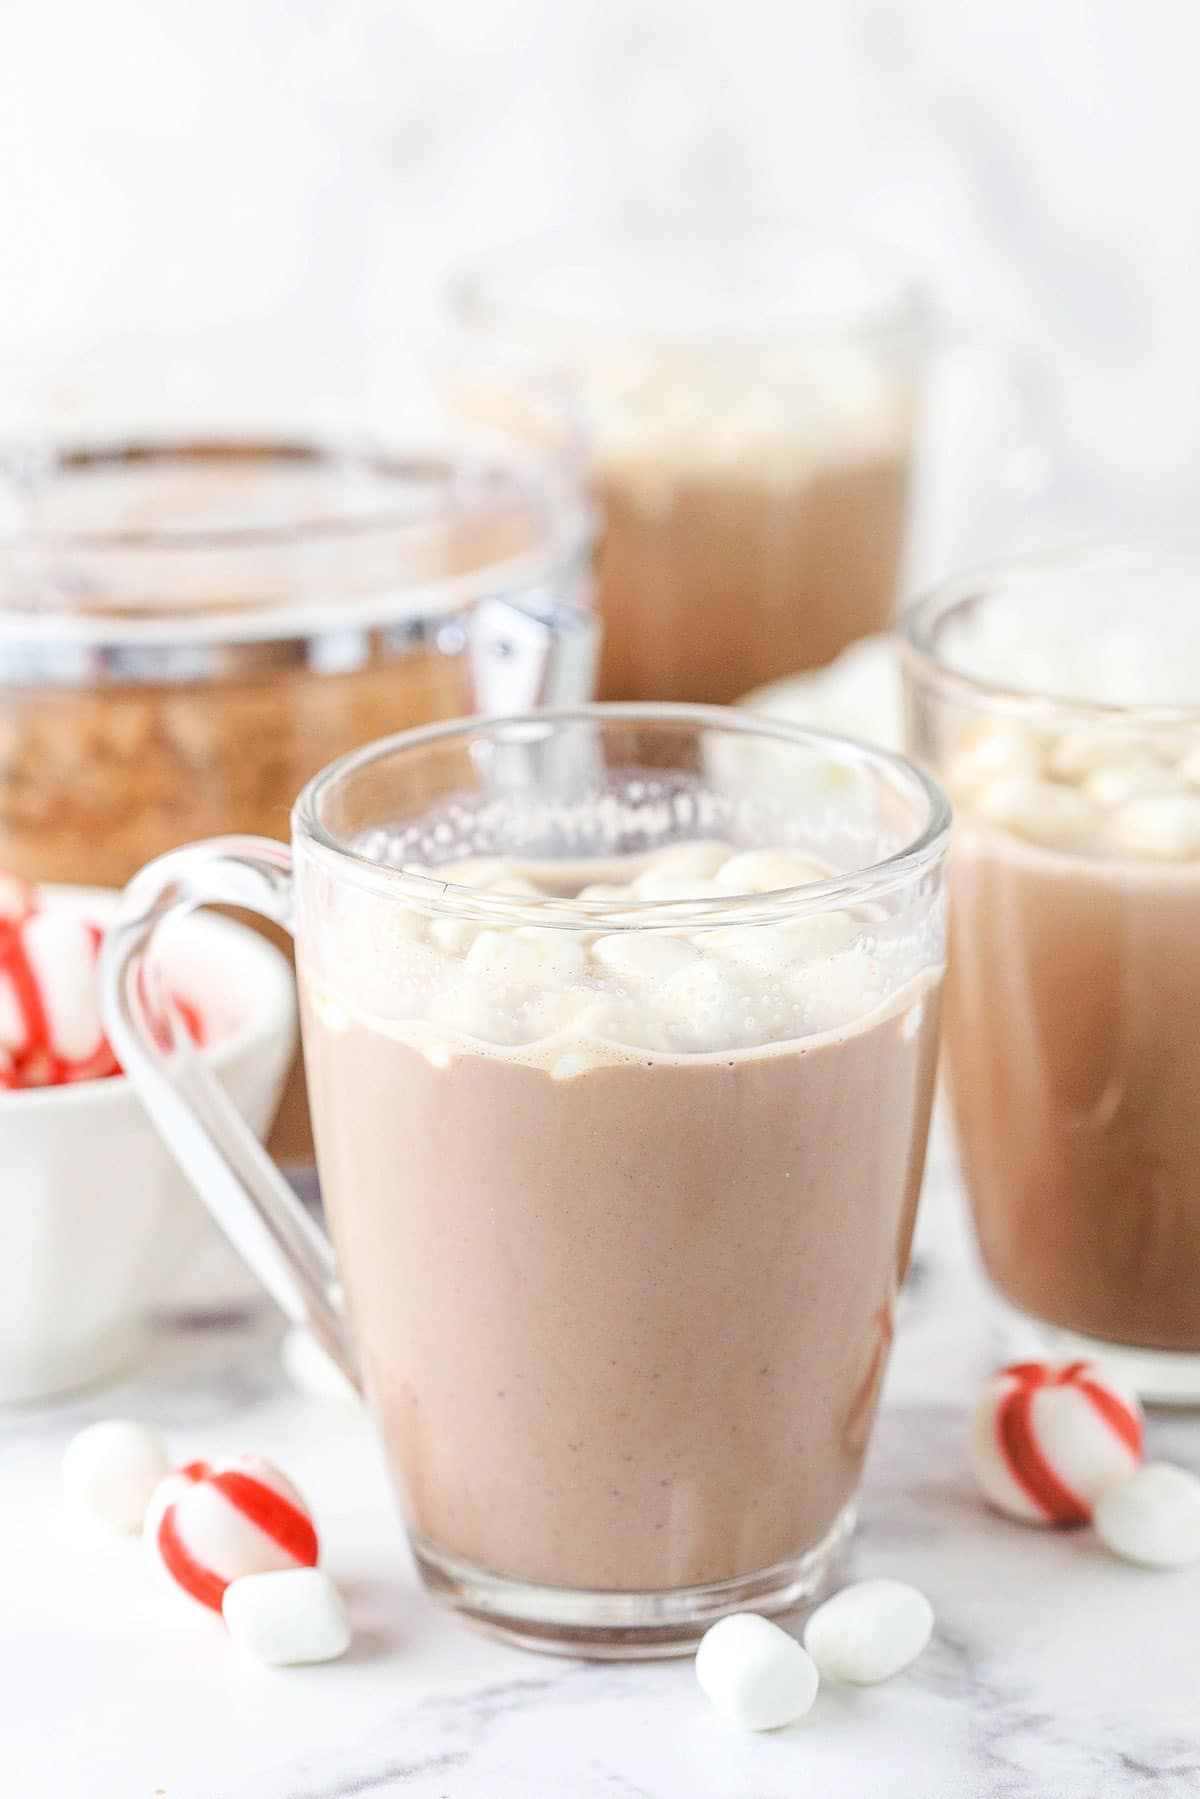 A glass mug full of homemade hot cocoa with peppermint candies in a bowl beside it